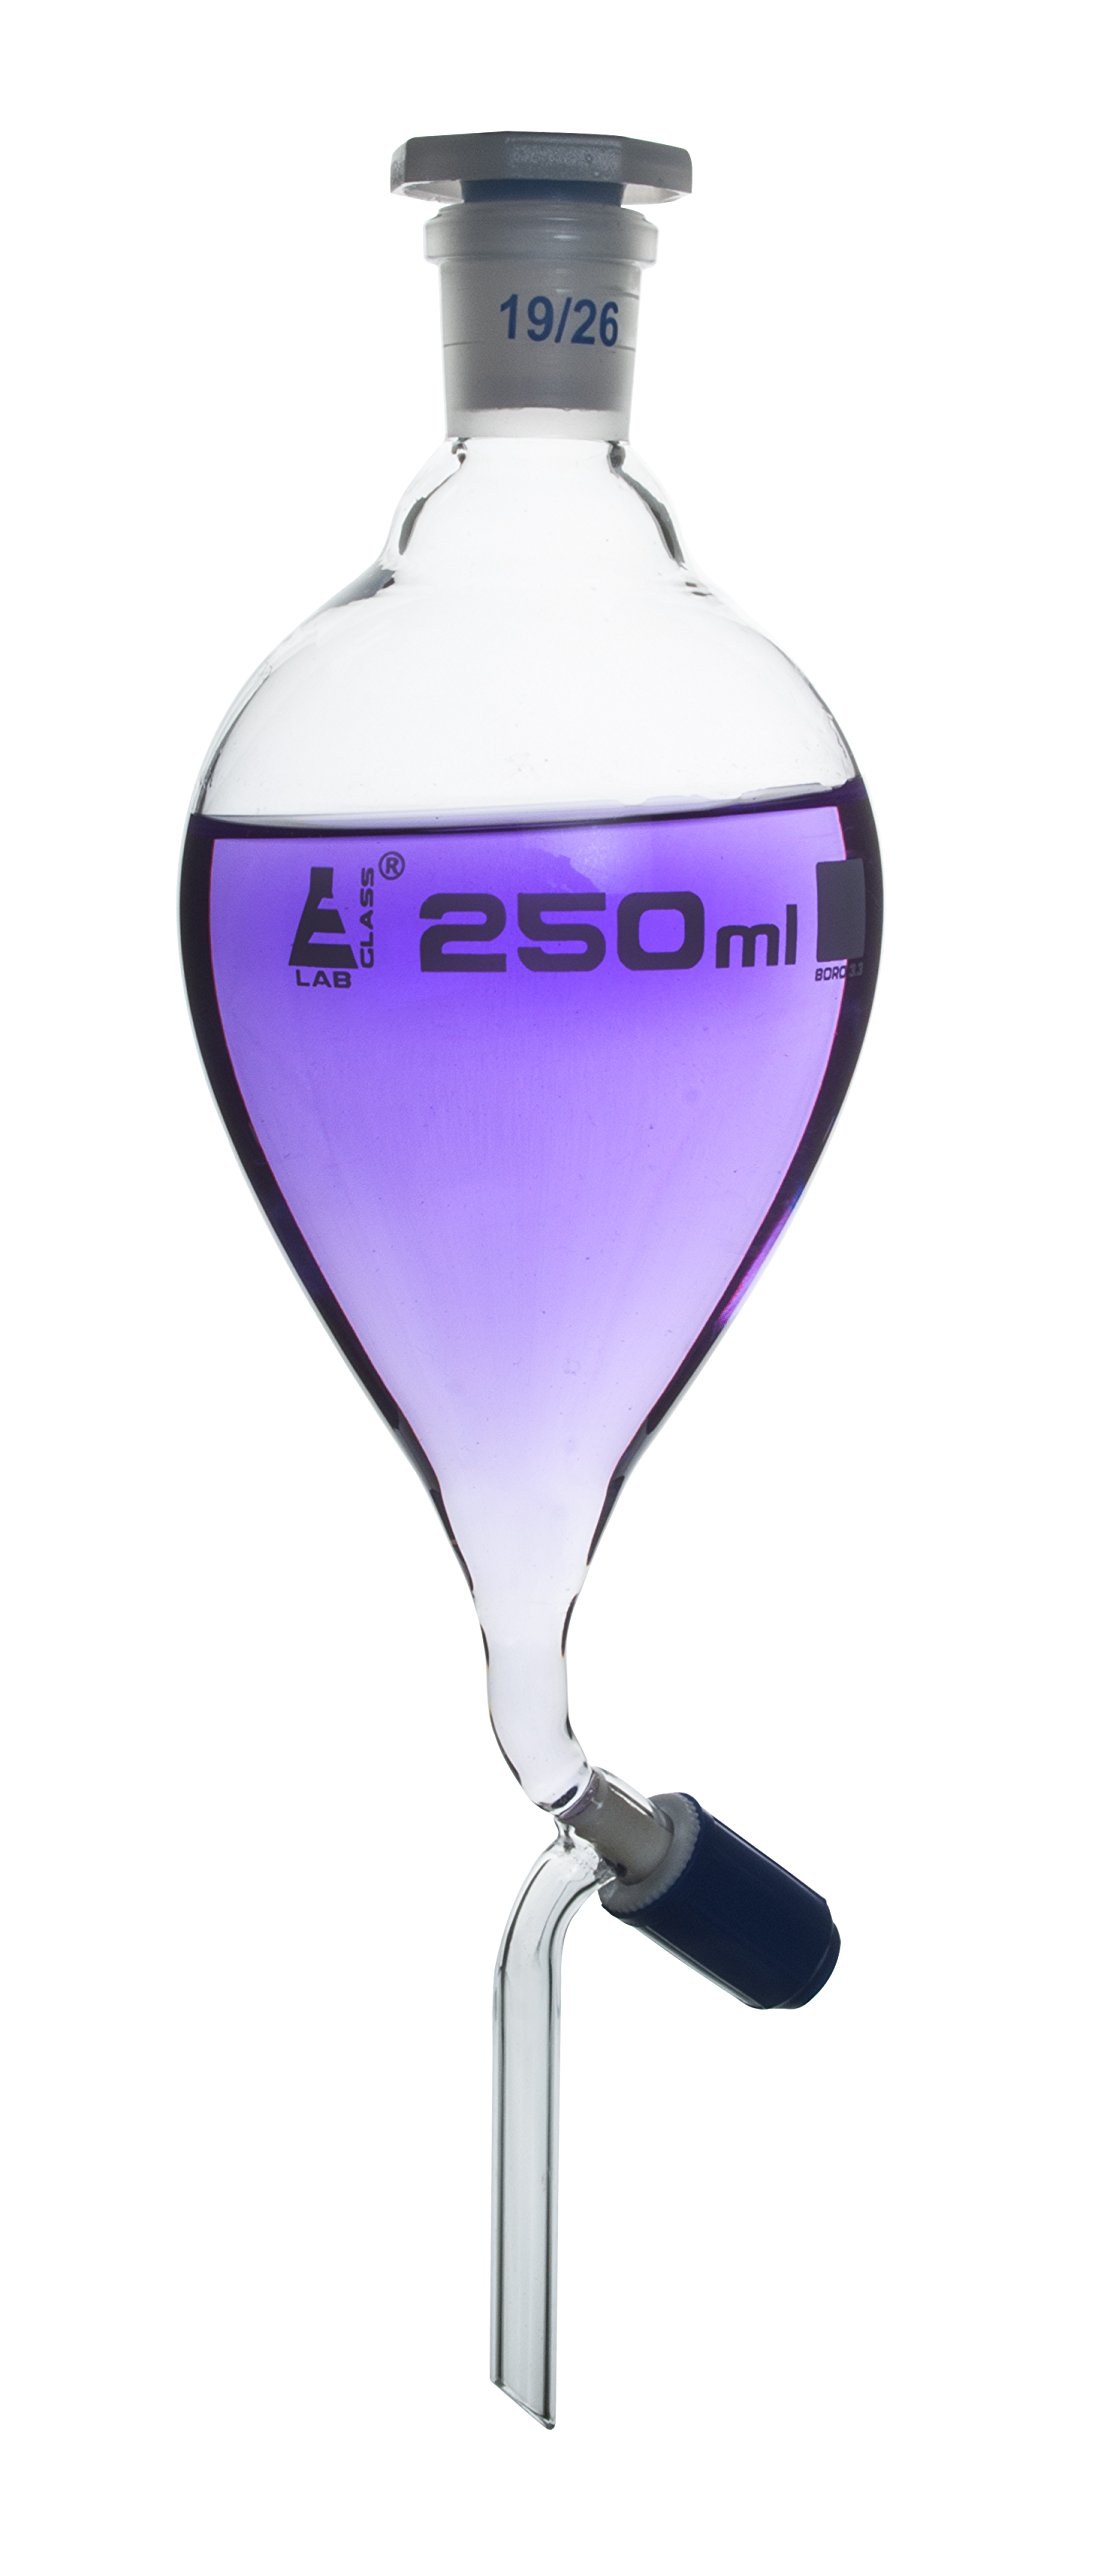 250ml Separating Funnel - Borosilicate Glass, Pear Shaped, With Stopper And Rotaflow Stopcock - Eisco Labs